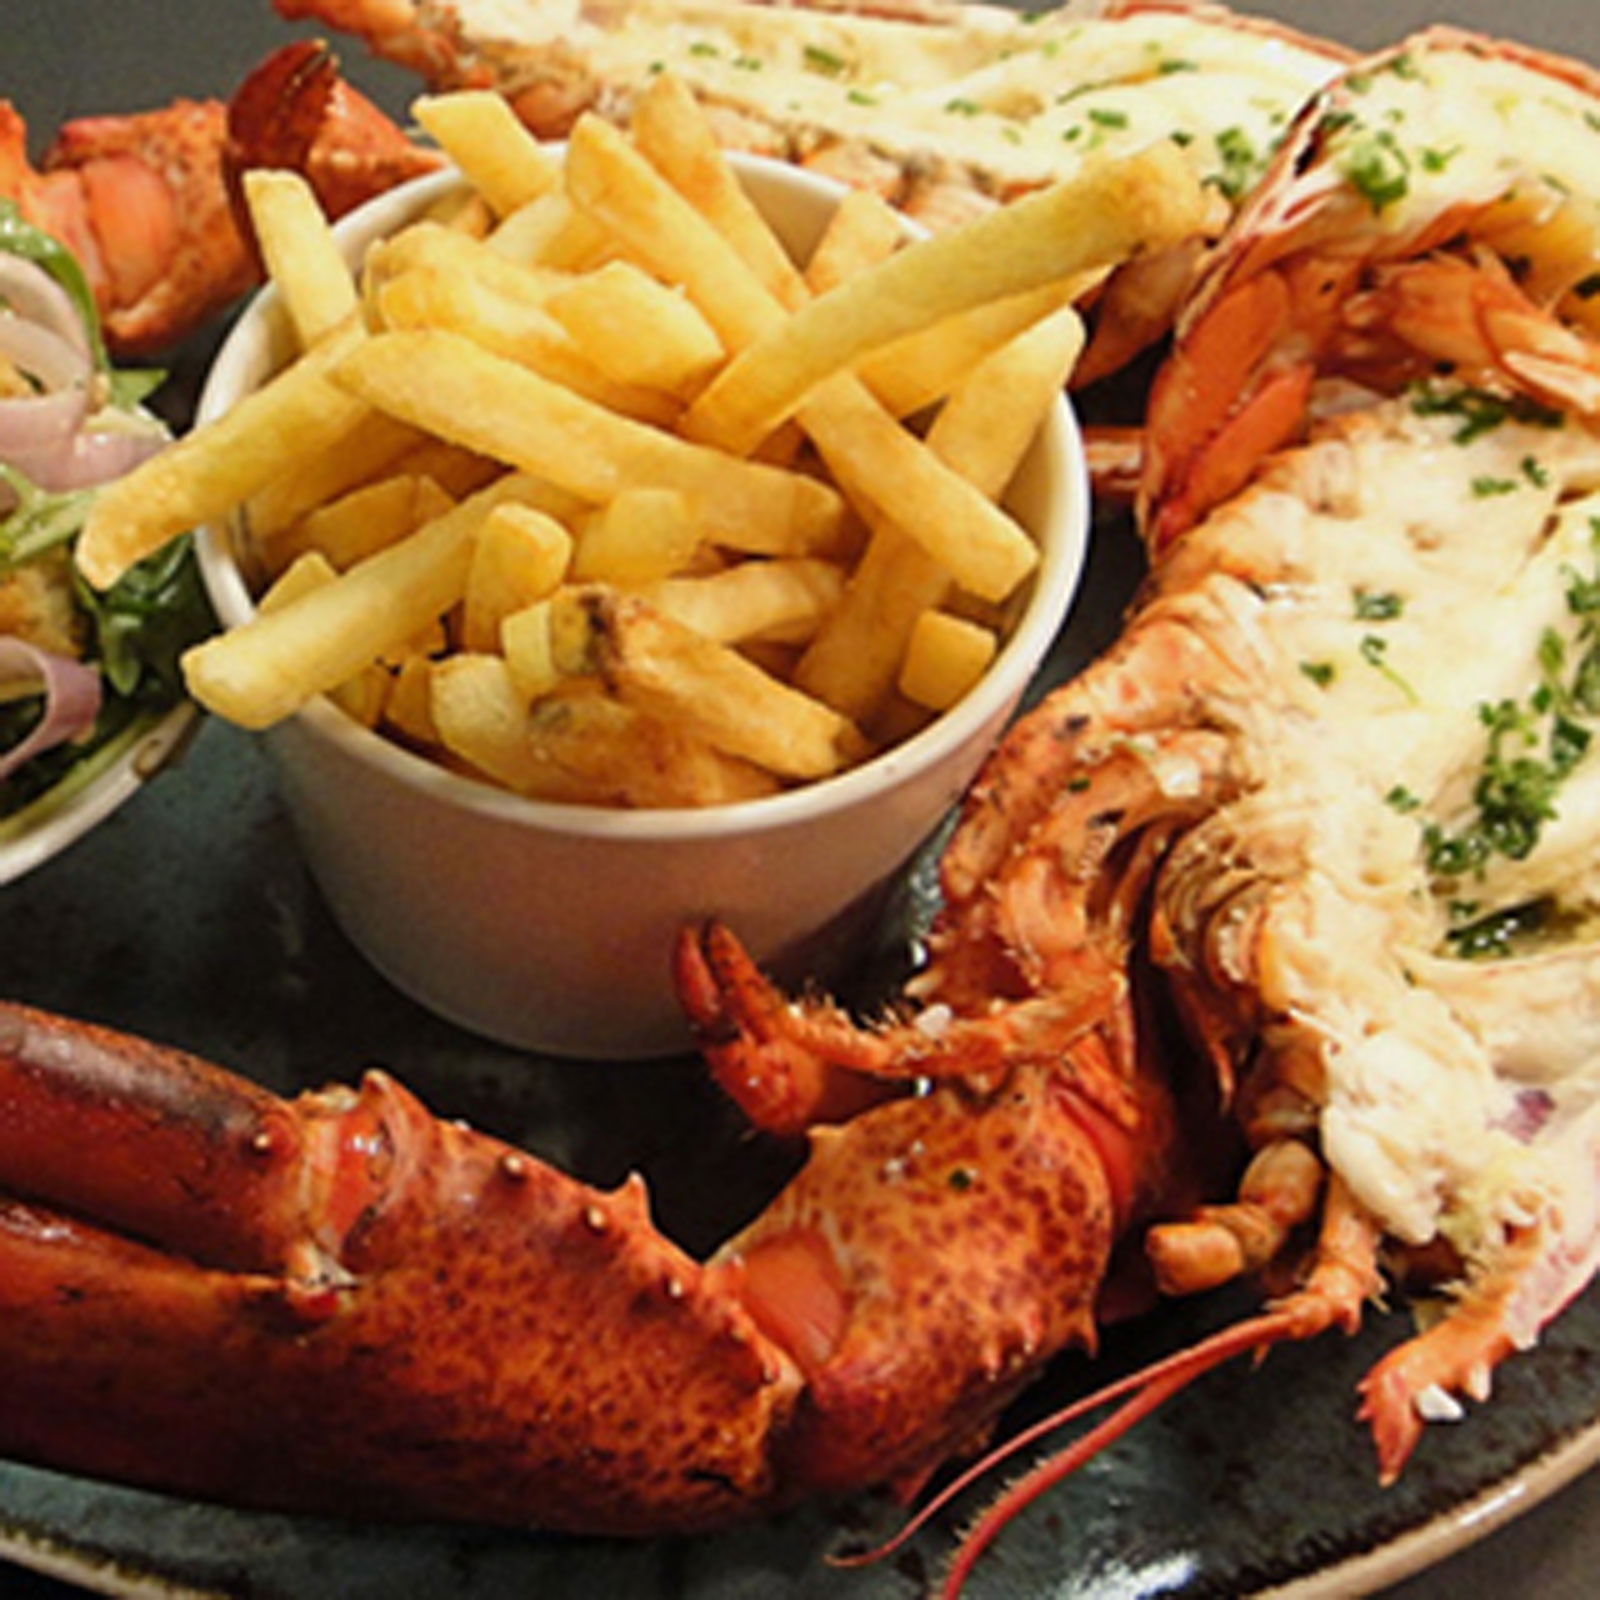 Reserva en Steak & Lobster Manchester